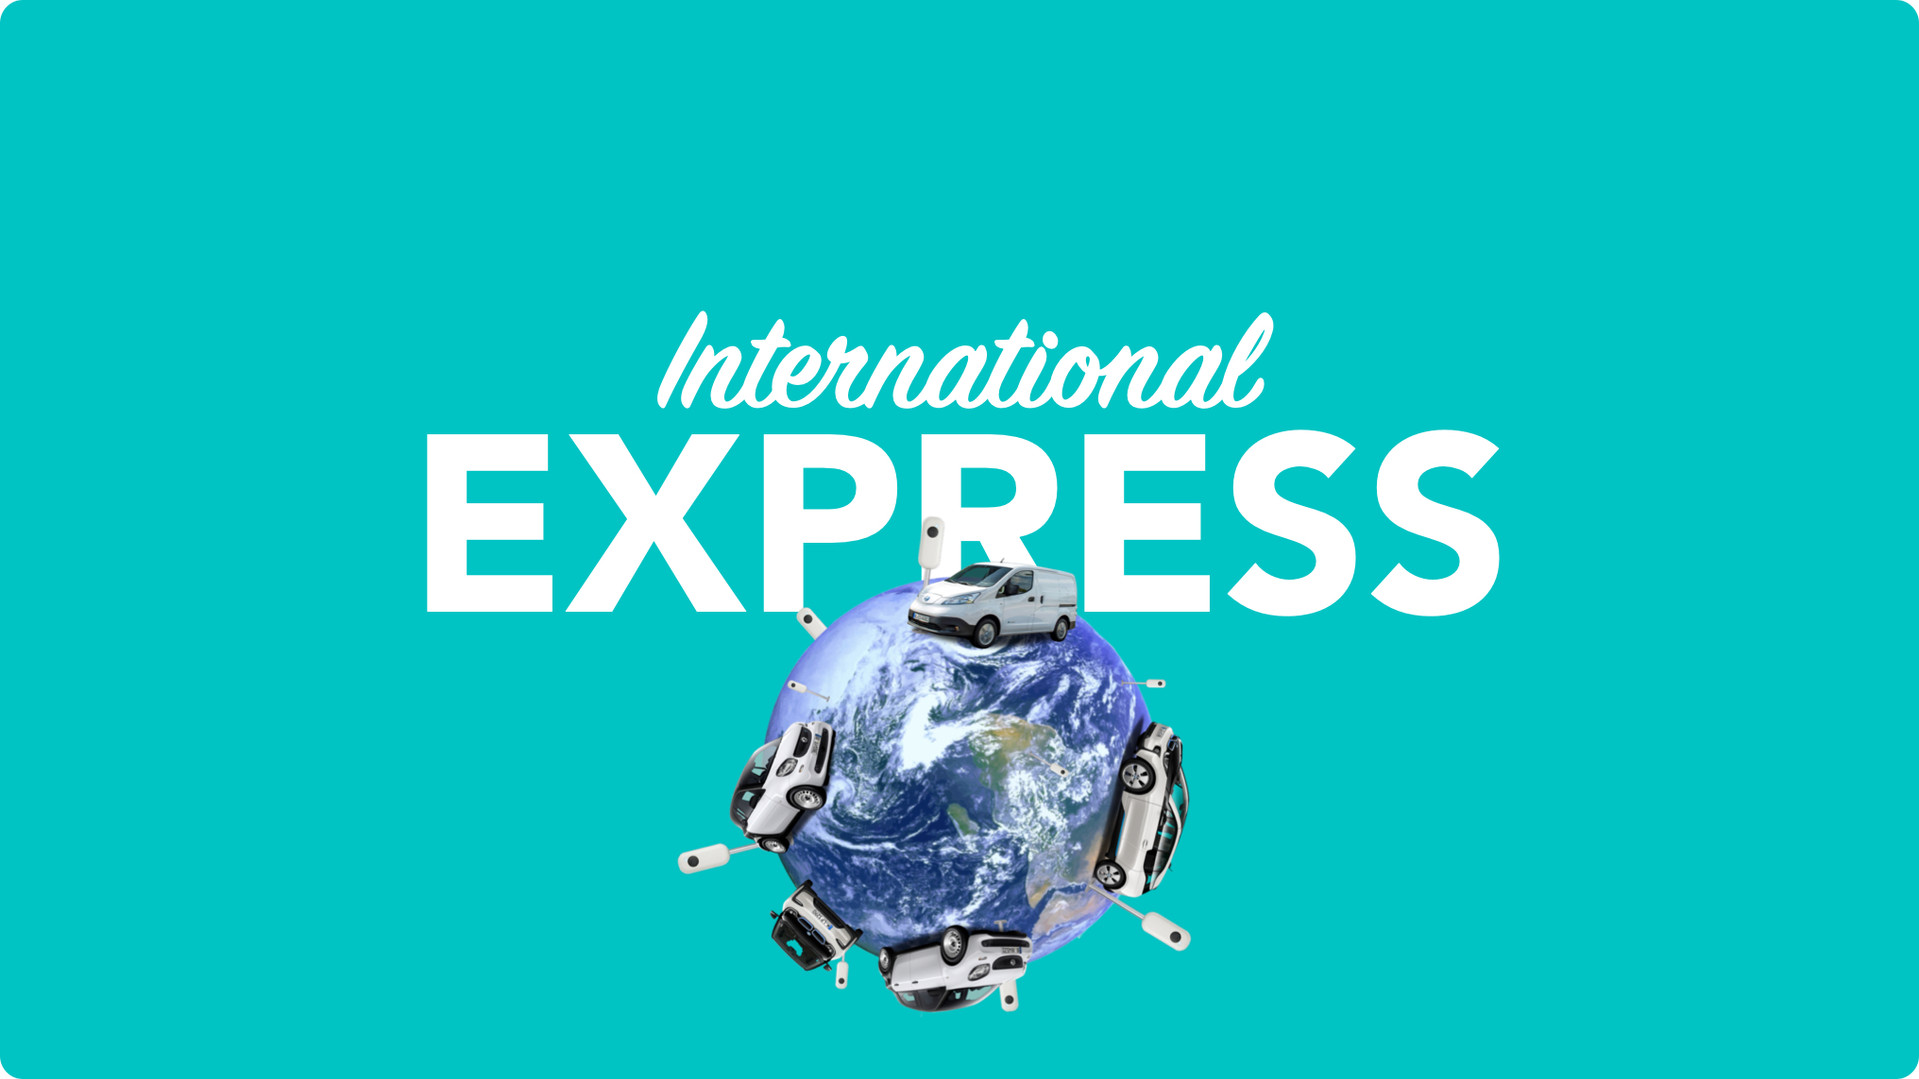 Internationaler Expressversand